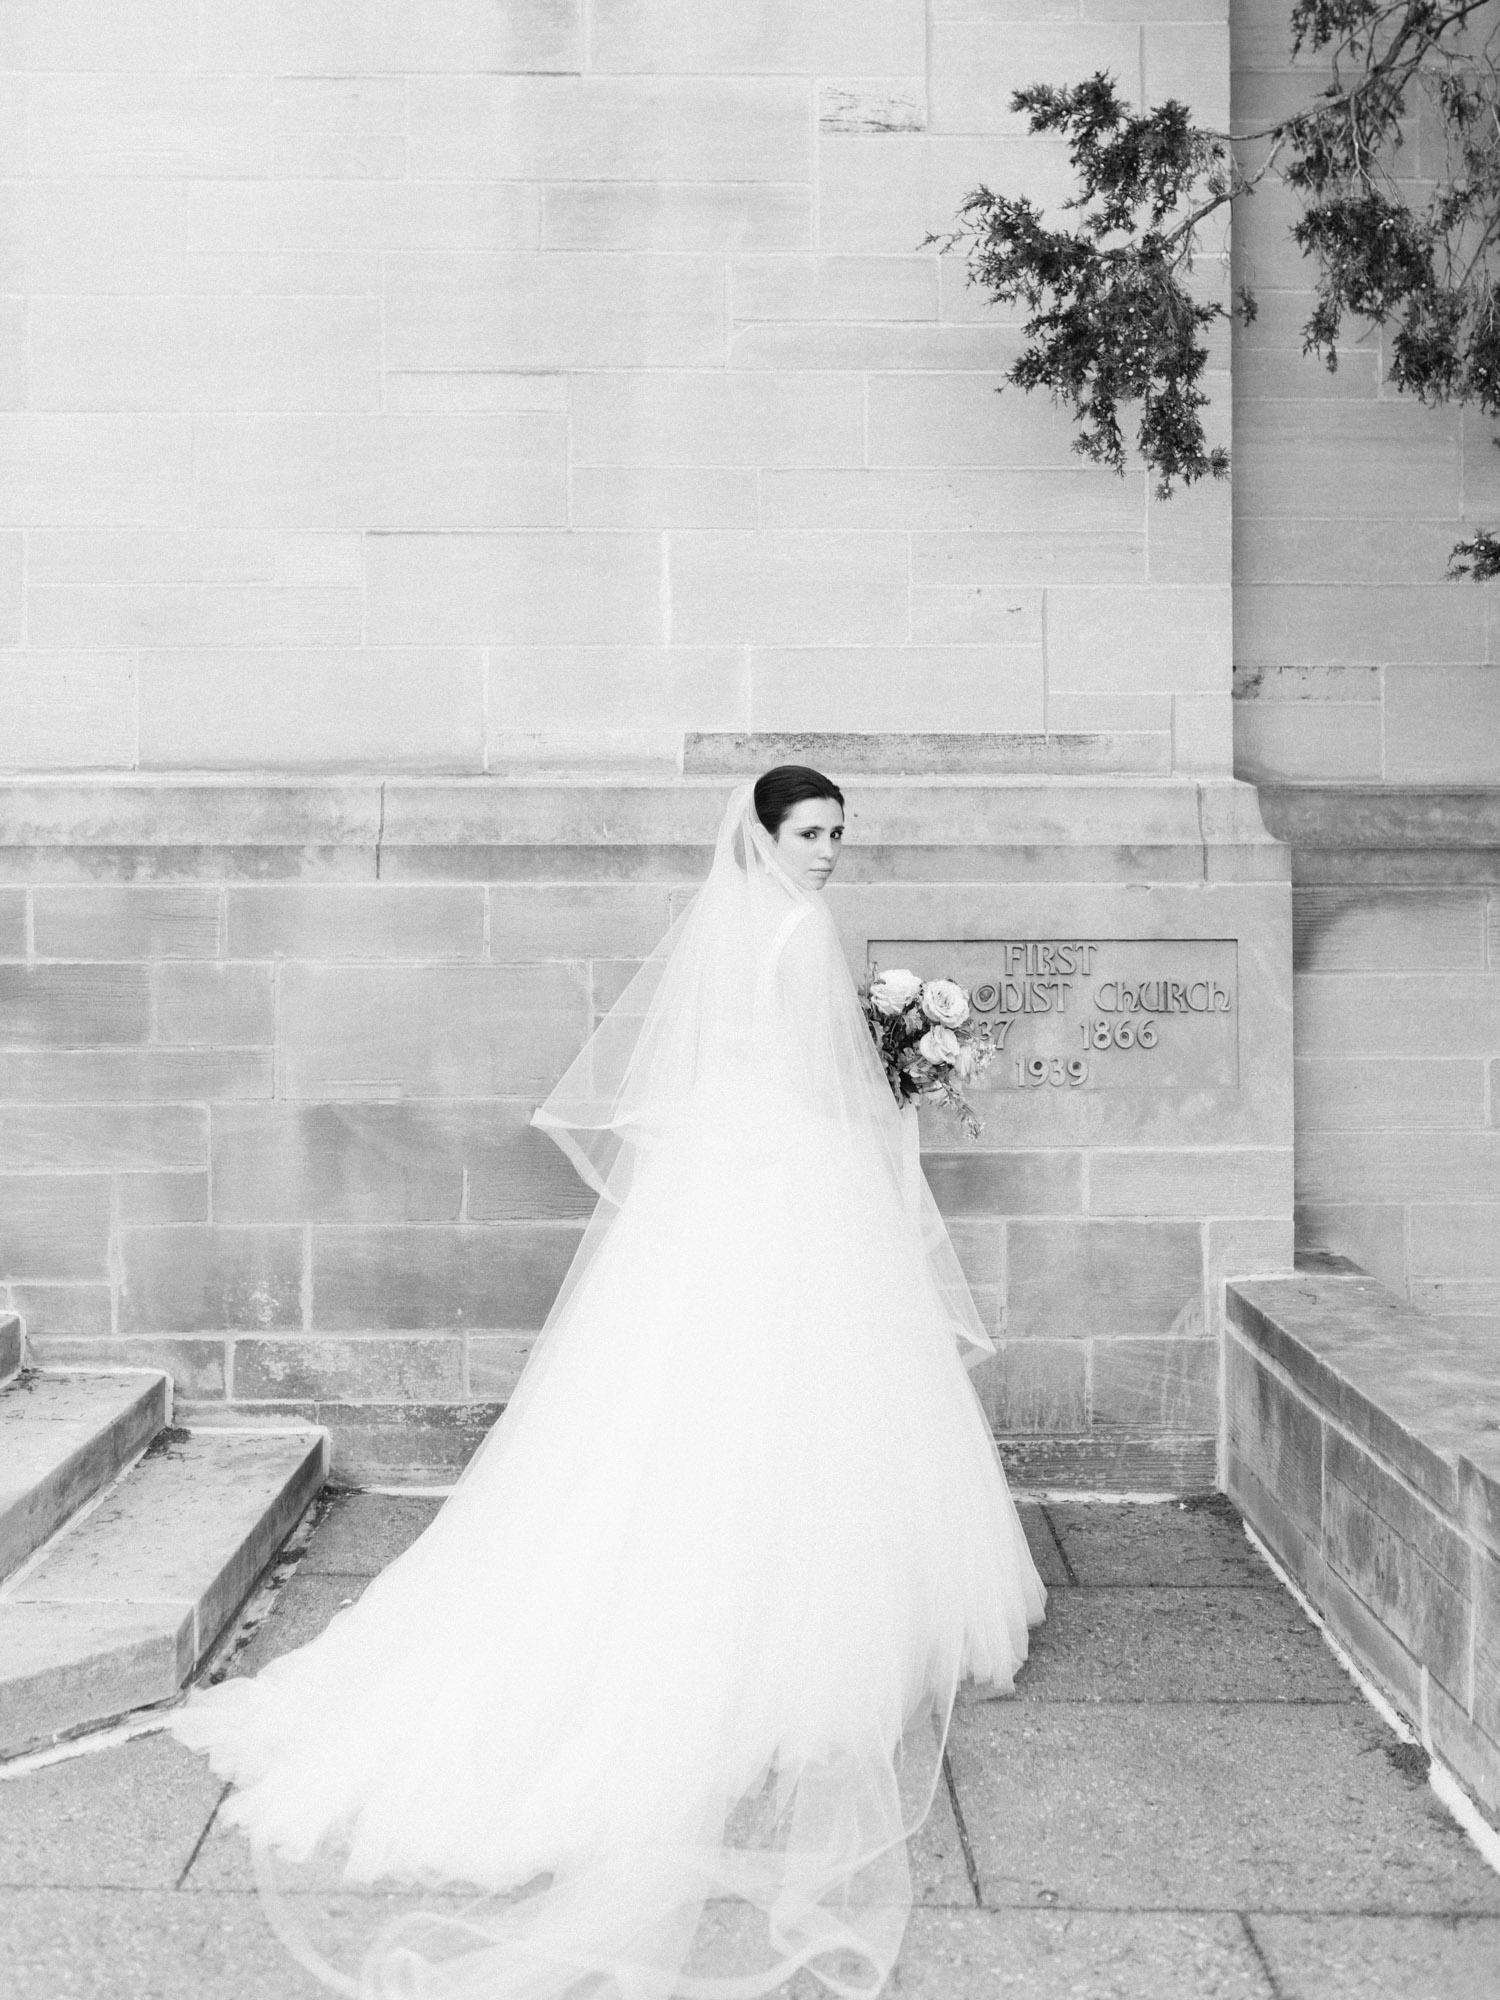 A bride with a long veil and train turns to look at the camera outside an Ann Arbor, Michigan wedding venue